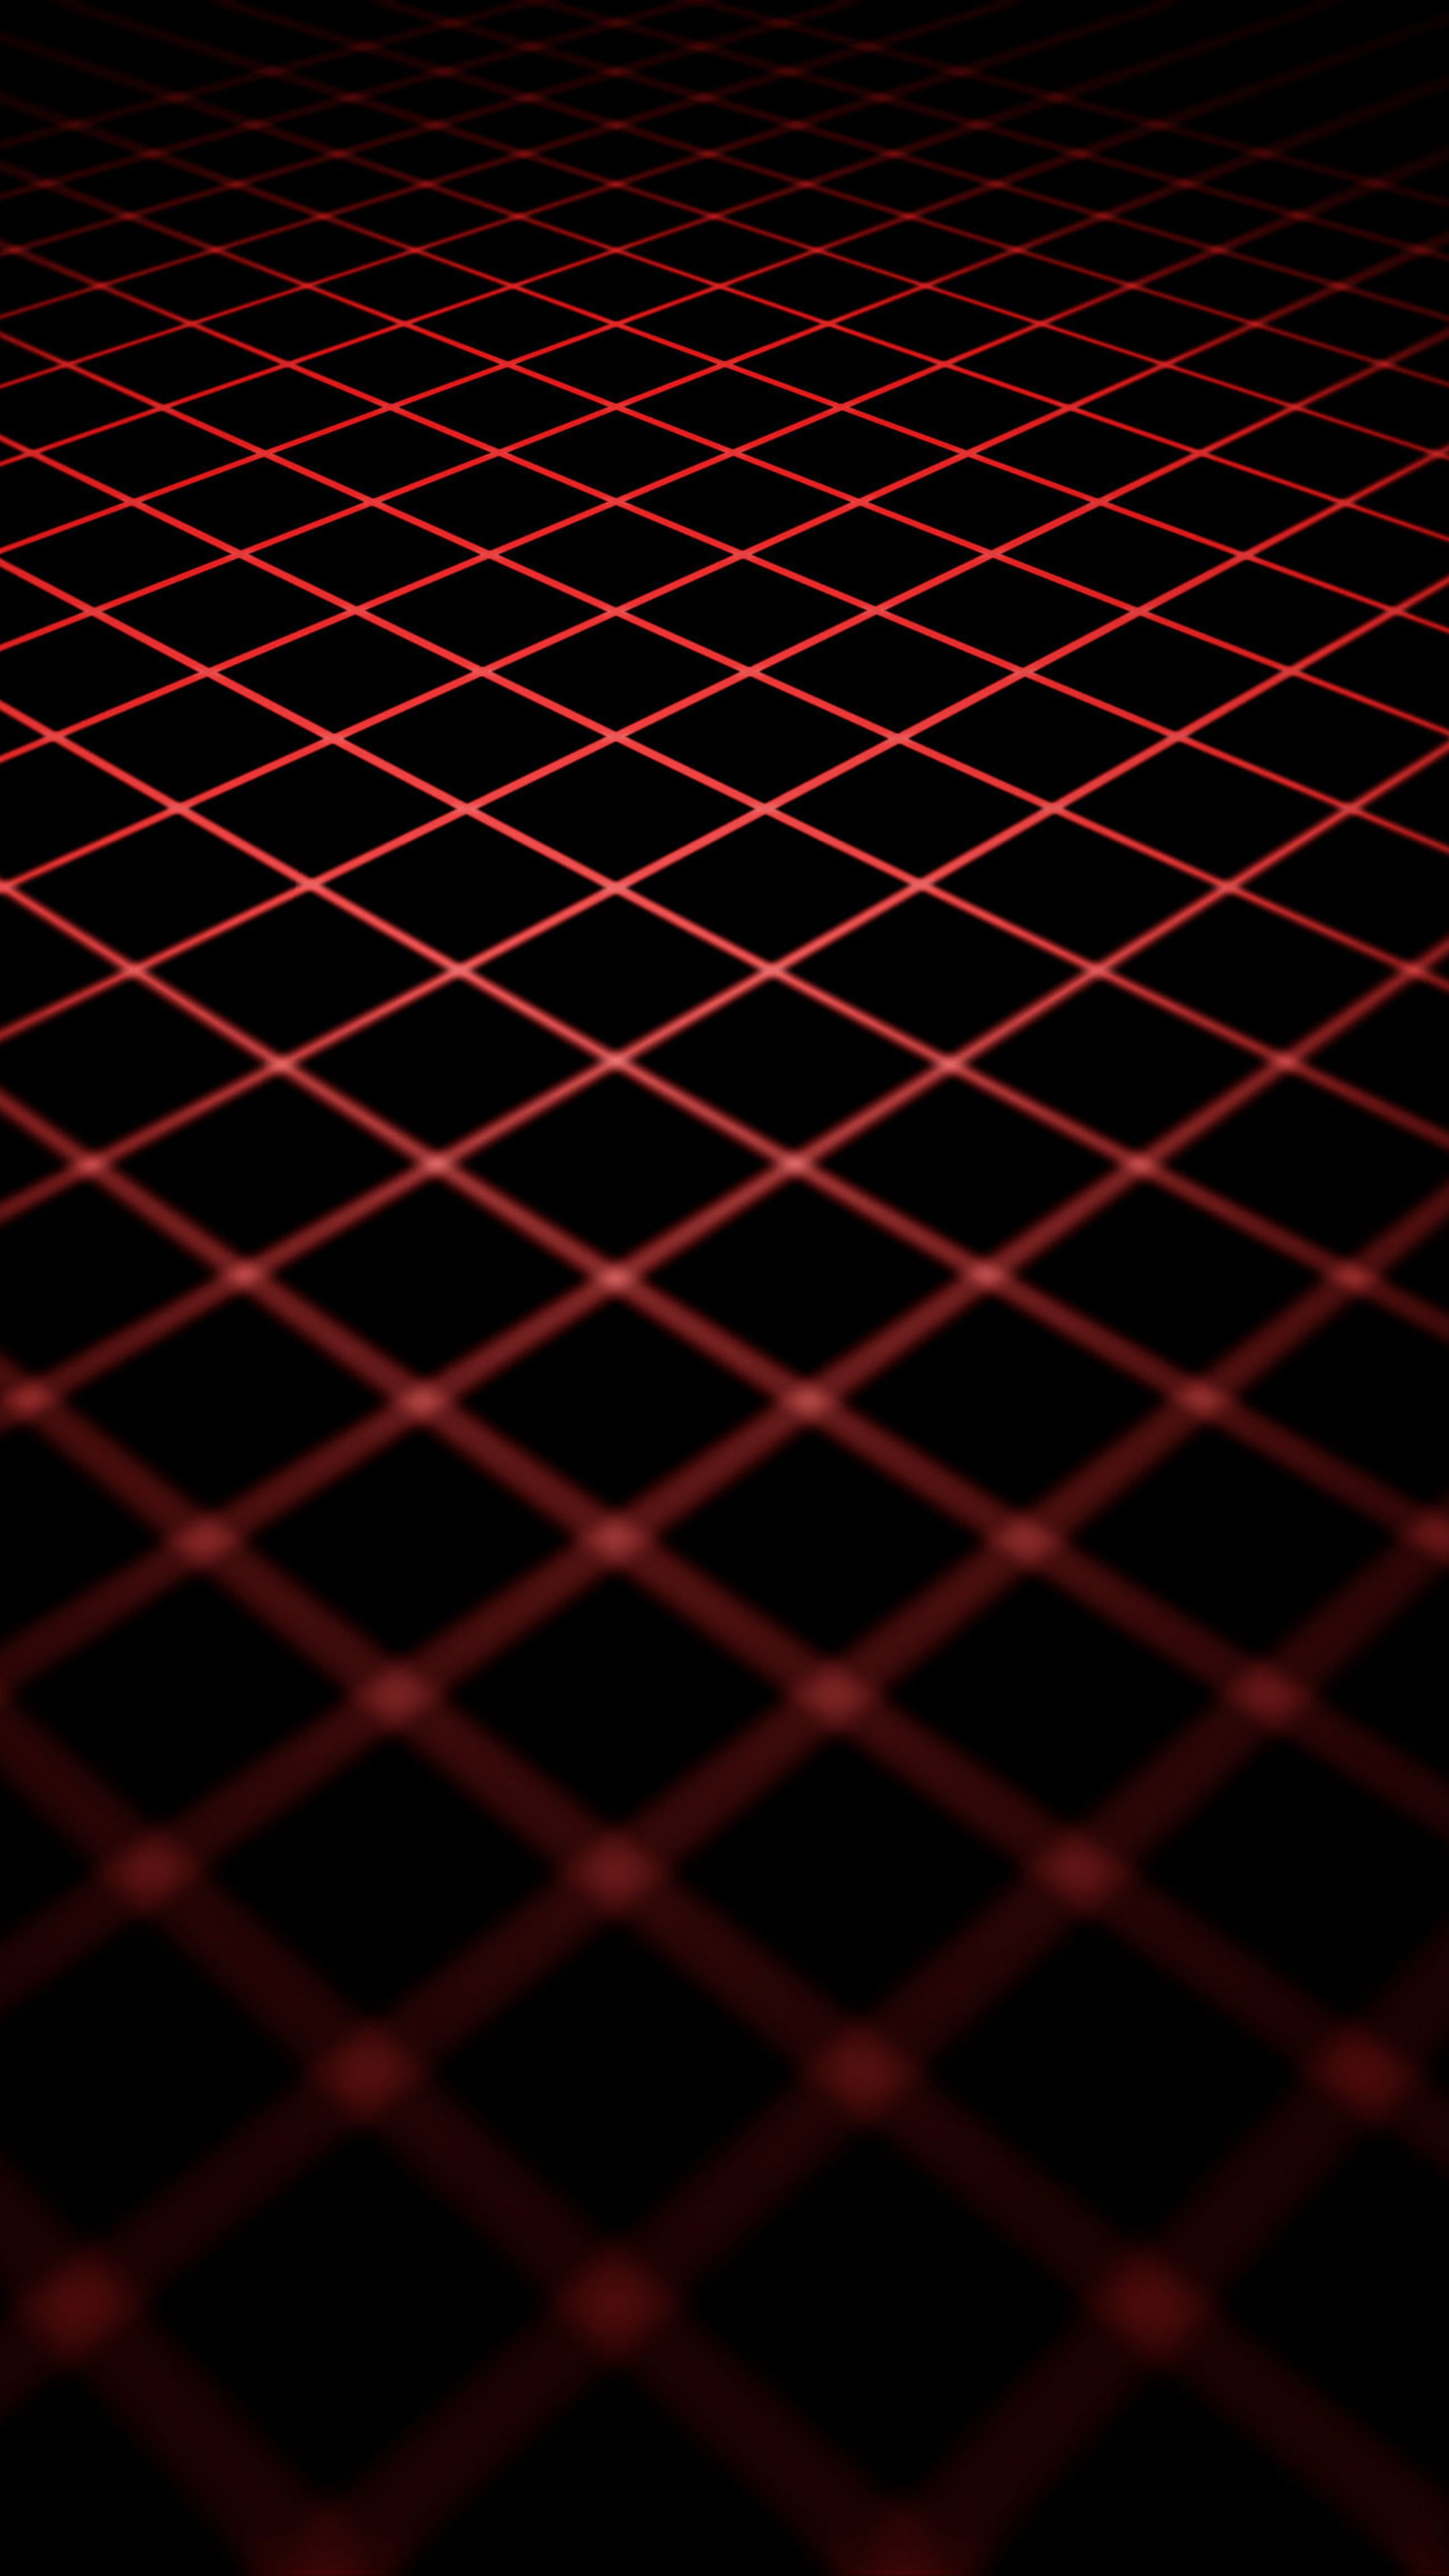 3d abstract lines dq wallpaper 2160x3840 - 2160x3840 wallpaper ...